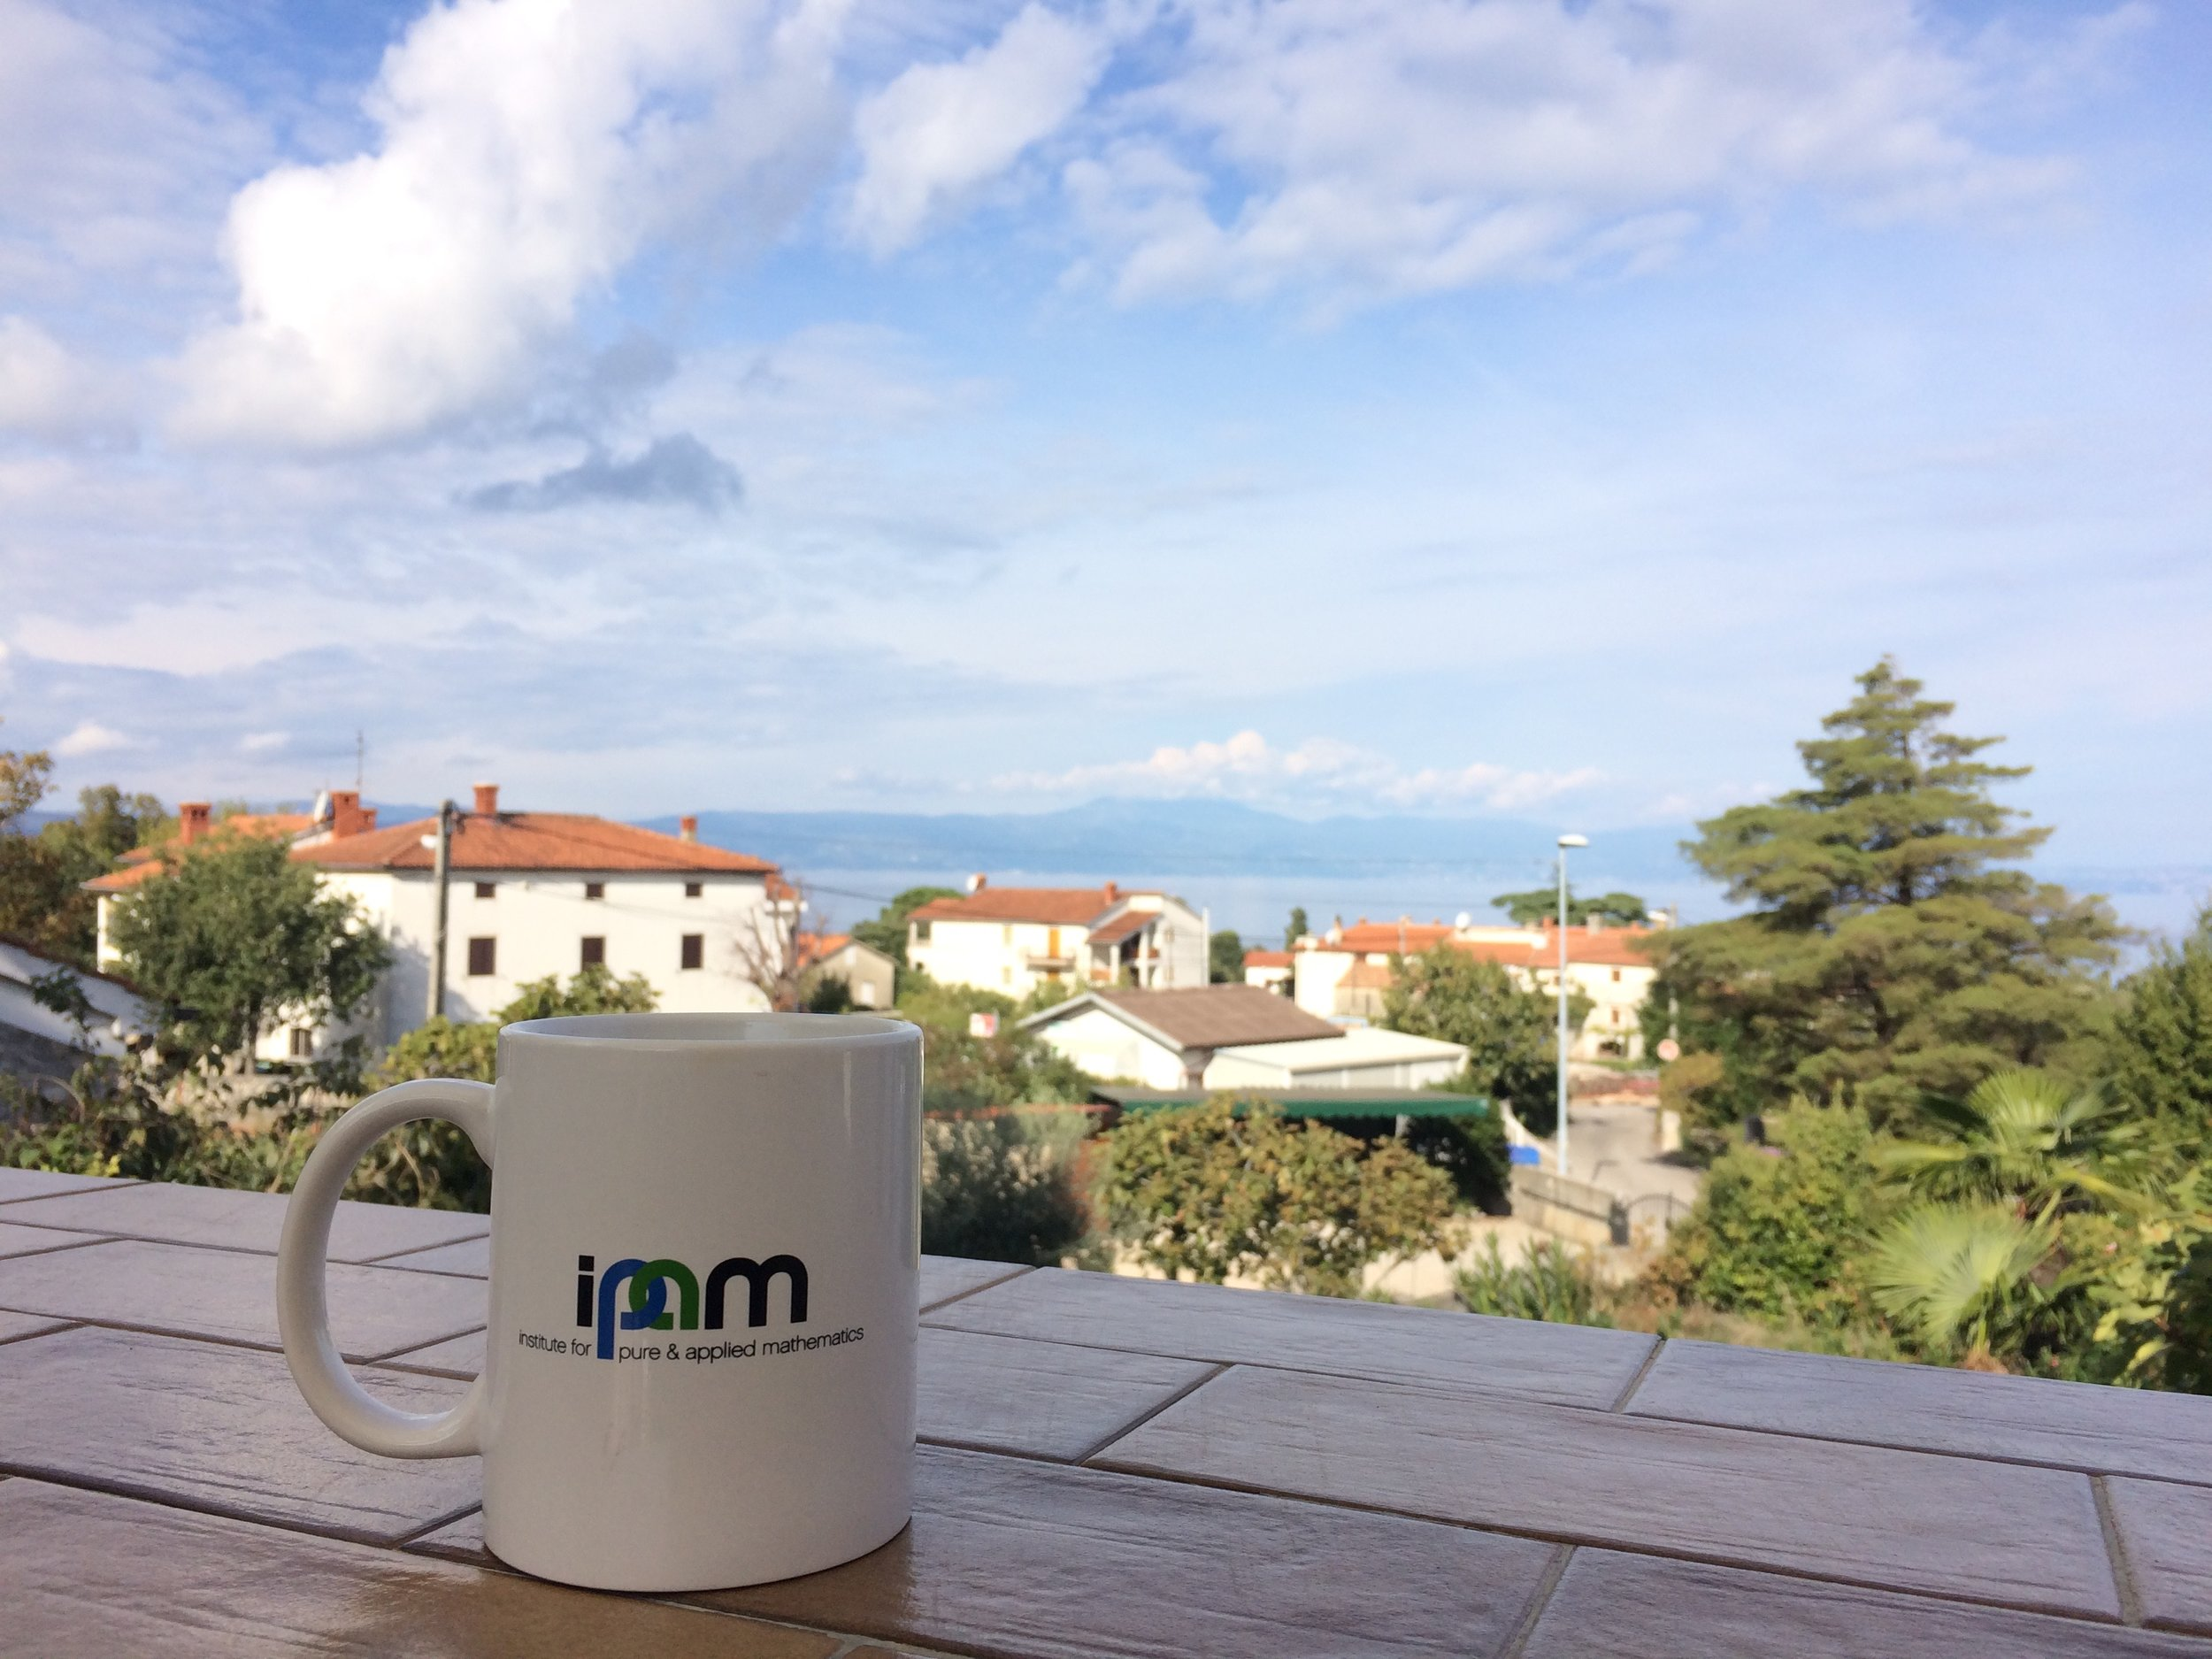 From a solo road trip through Europe. This is at a good friend's house in Croatia, with a mug from IPAM which hosted the program where we met.